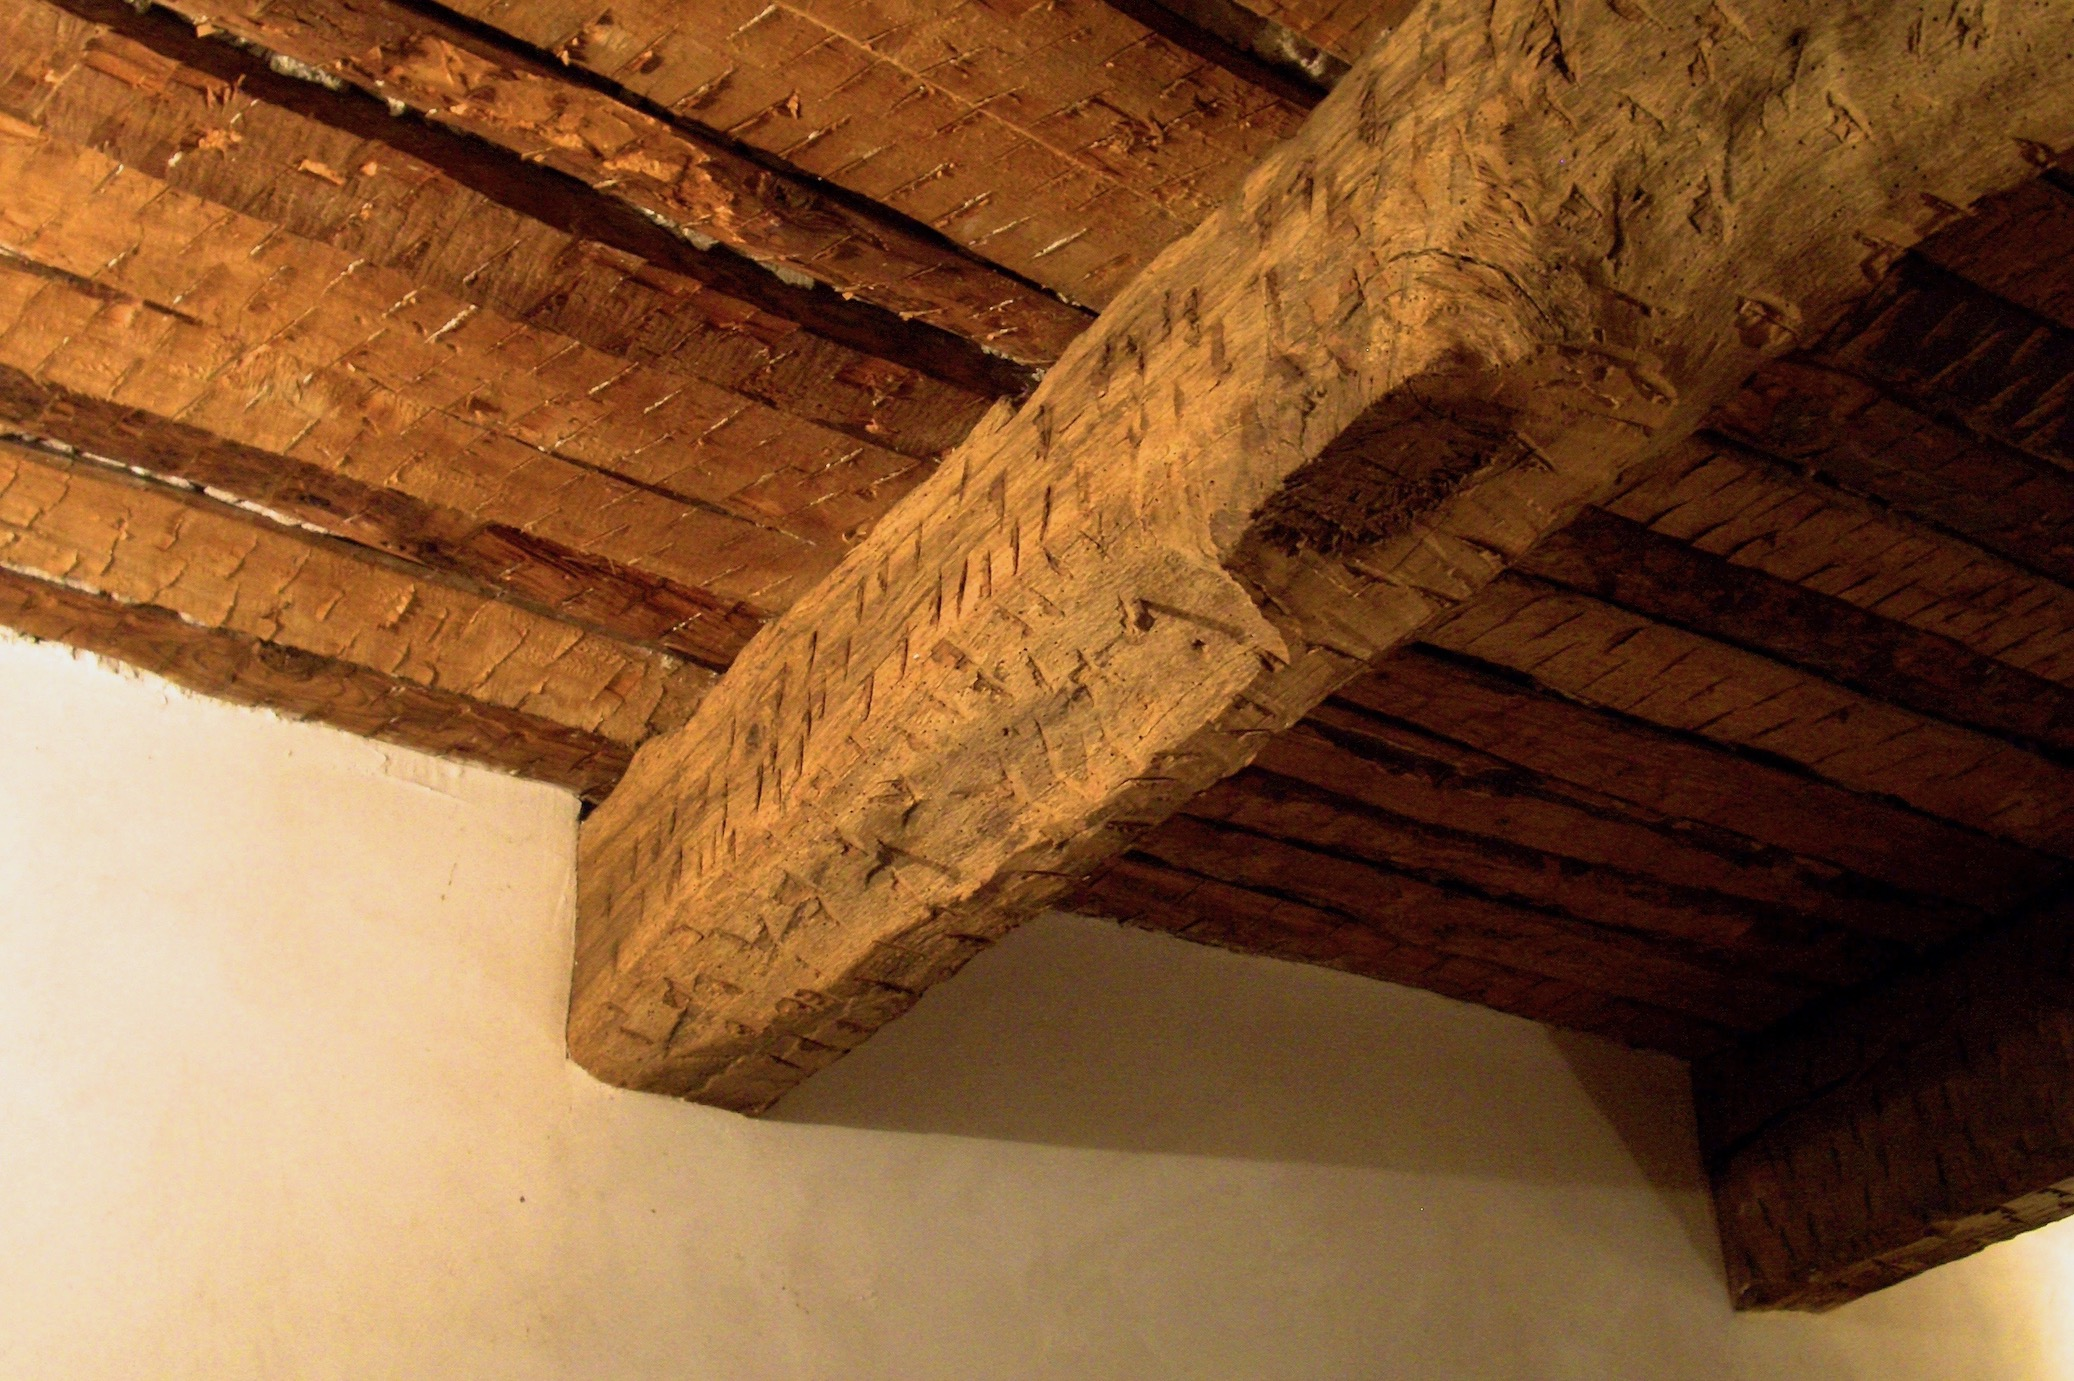 Original 17th century ceilings